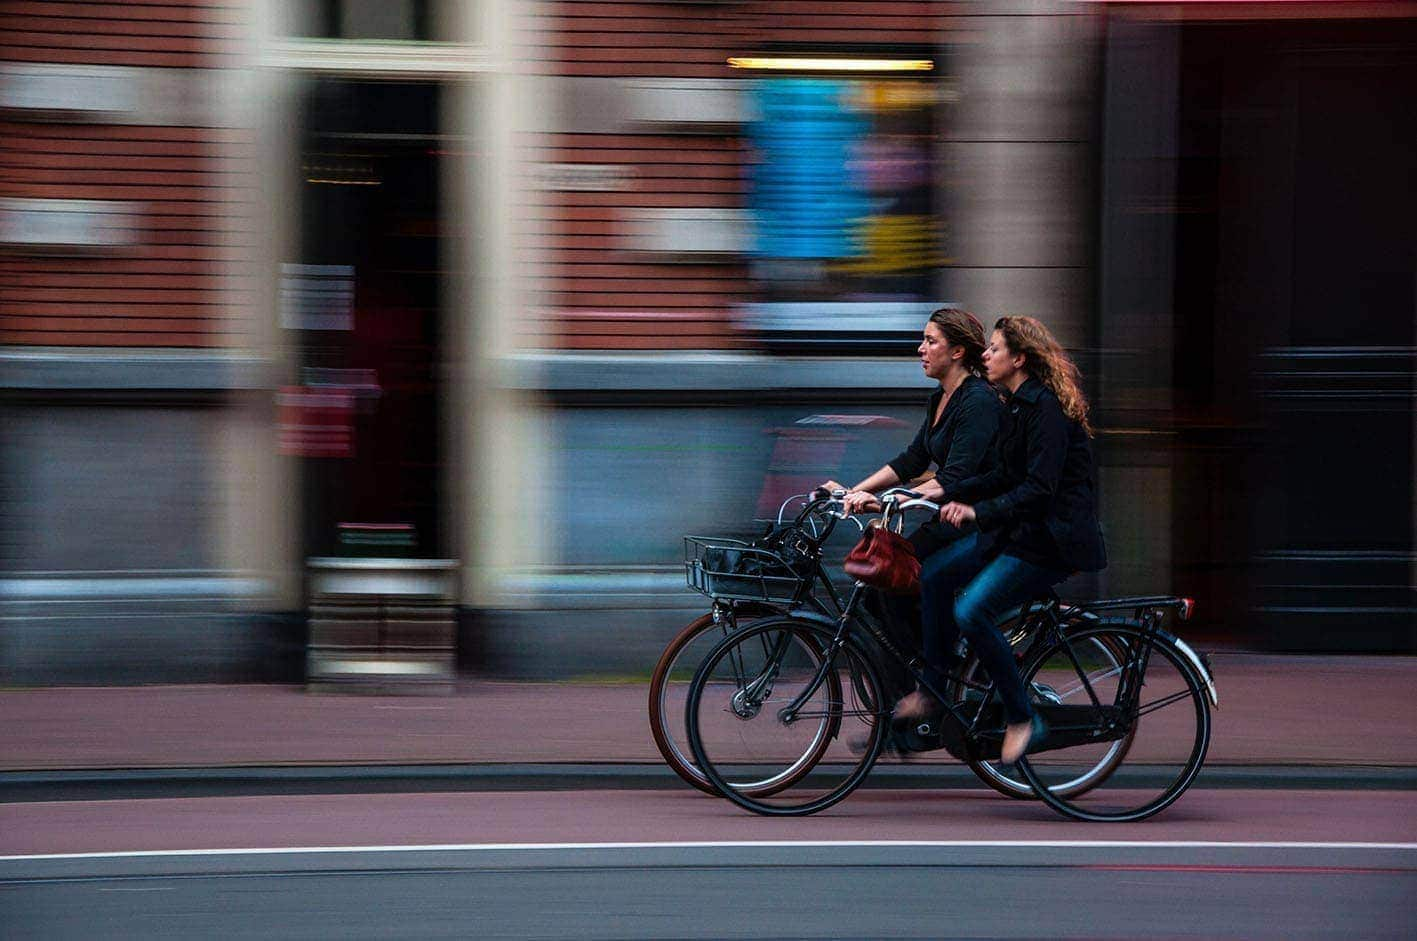 Image of two women riding a bicycle